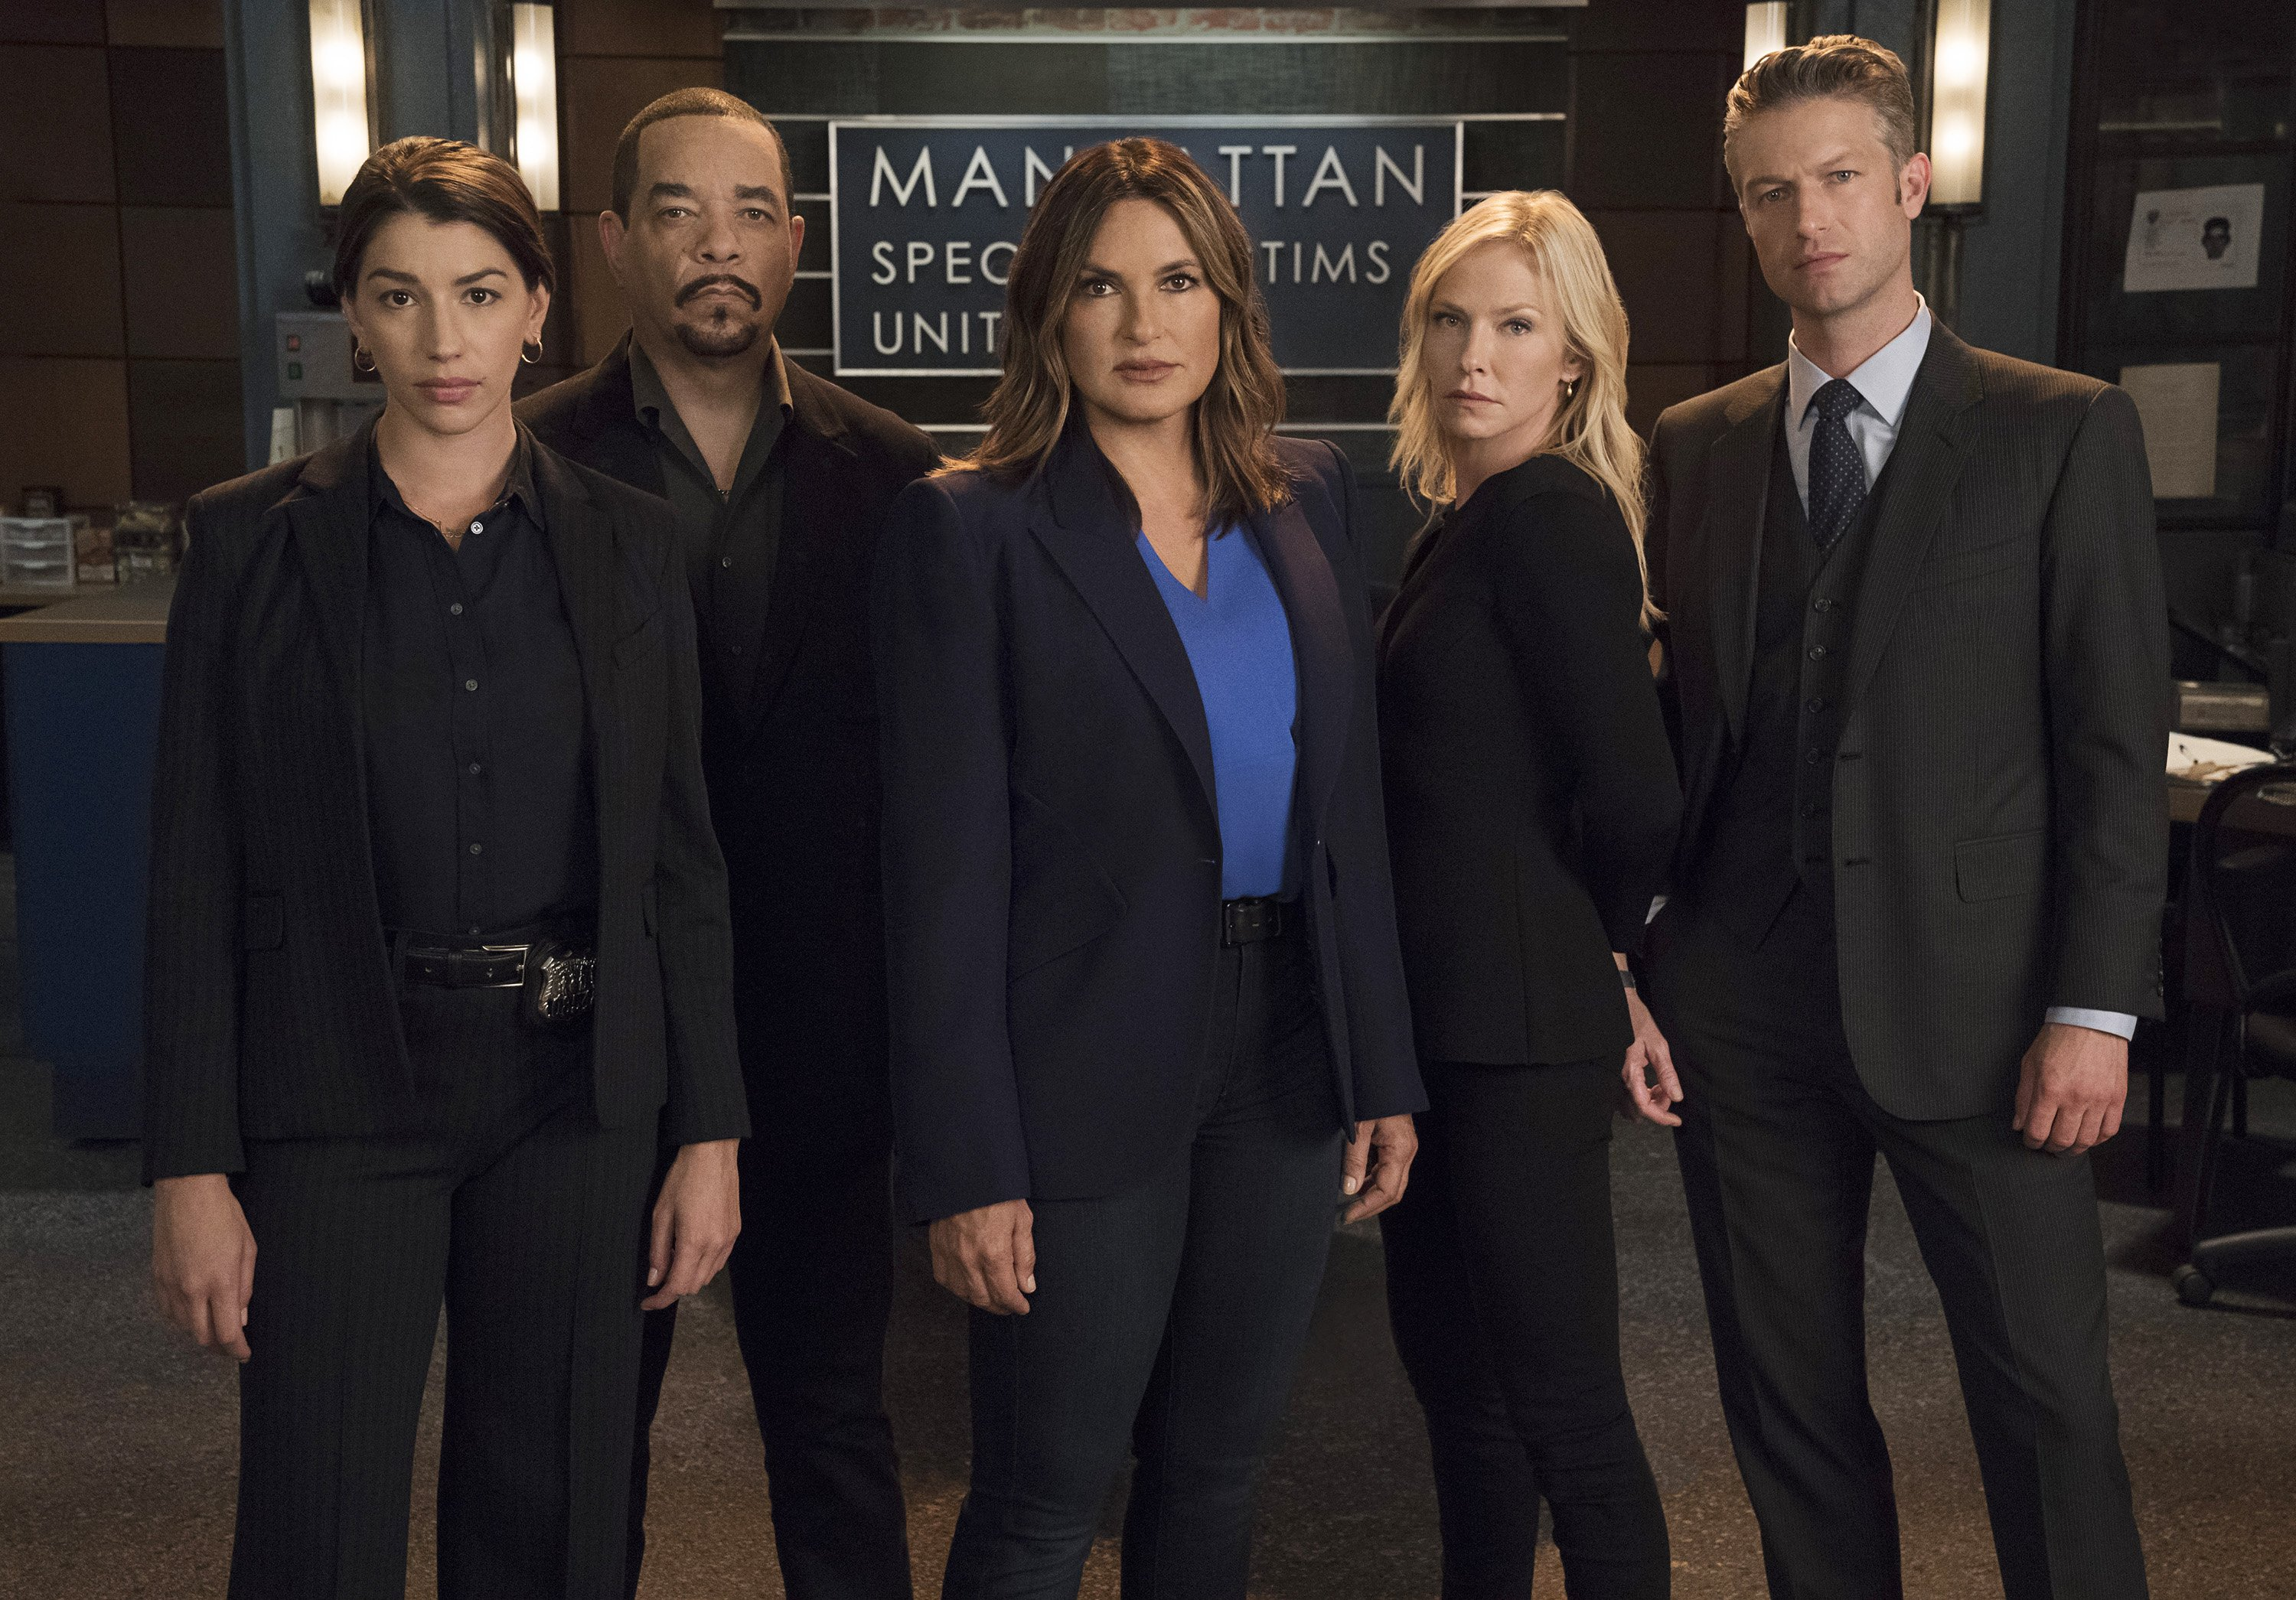 The cast of Law & Order is busy preparing for Season 22 of the successful police legal drama. | Photo: Getty Images.